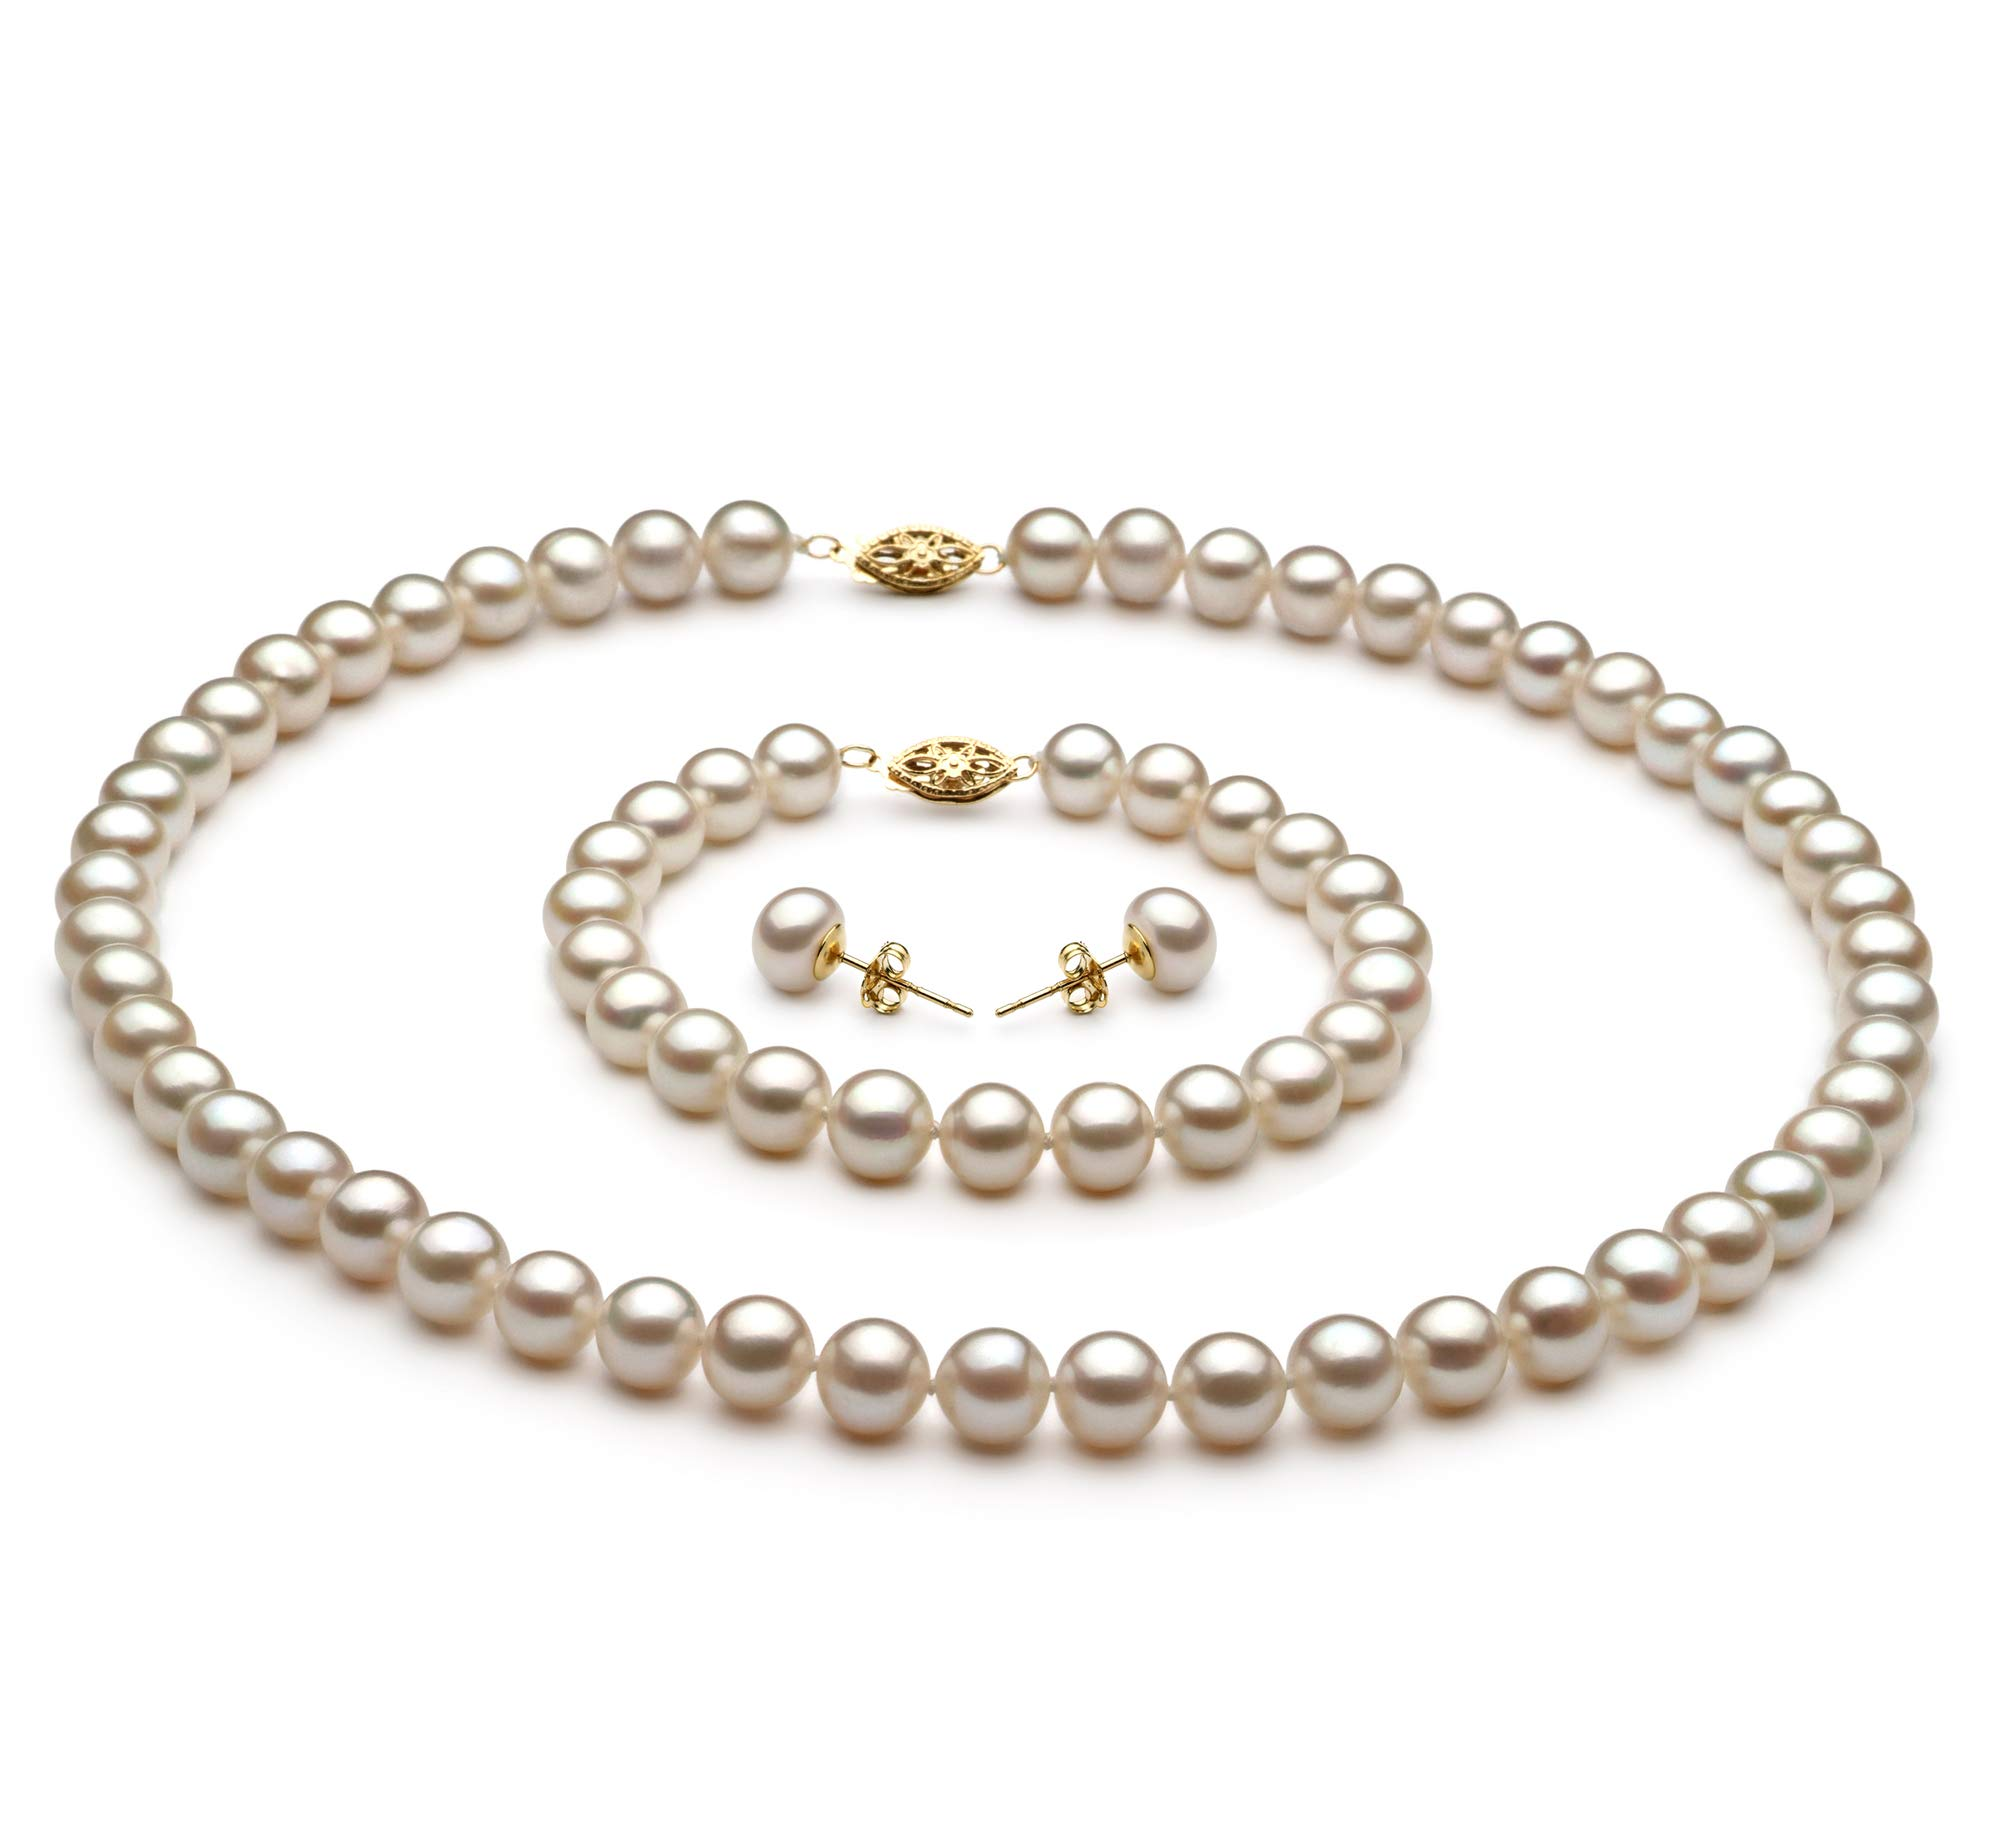 White 7.5-8.5mm AA Quality Freshwater Cultured Pearl Set for Women-18 in Princess Length